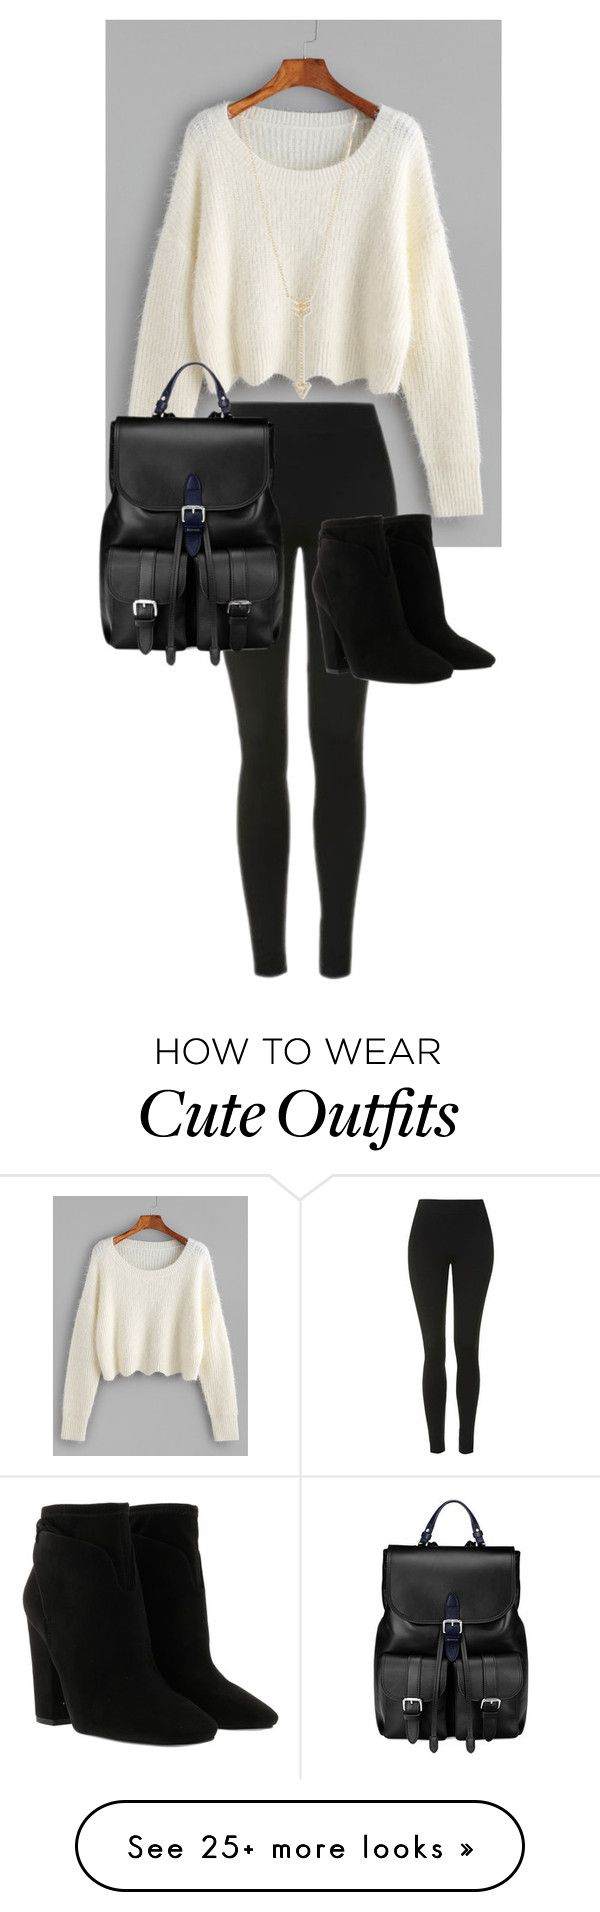 """""""Lazy but cute outfit for school"""" by pysaralina on Polyvore featuring Topshop, Kendall + Kylie, Aspinal of London and EF Collection"""